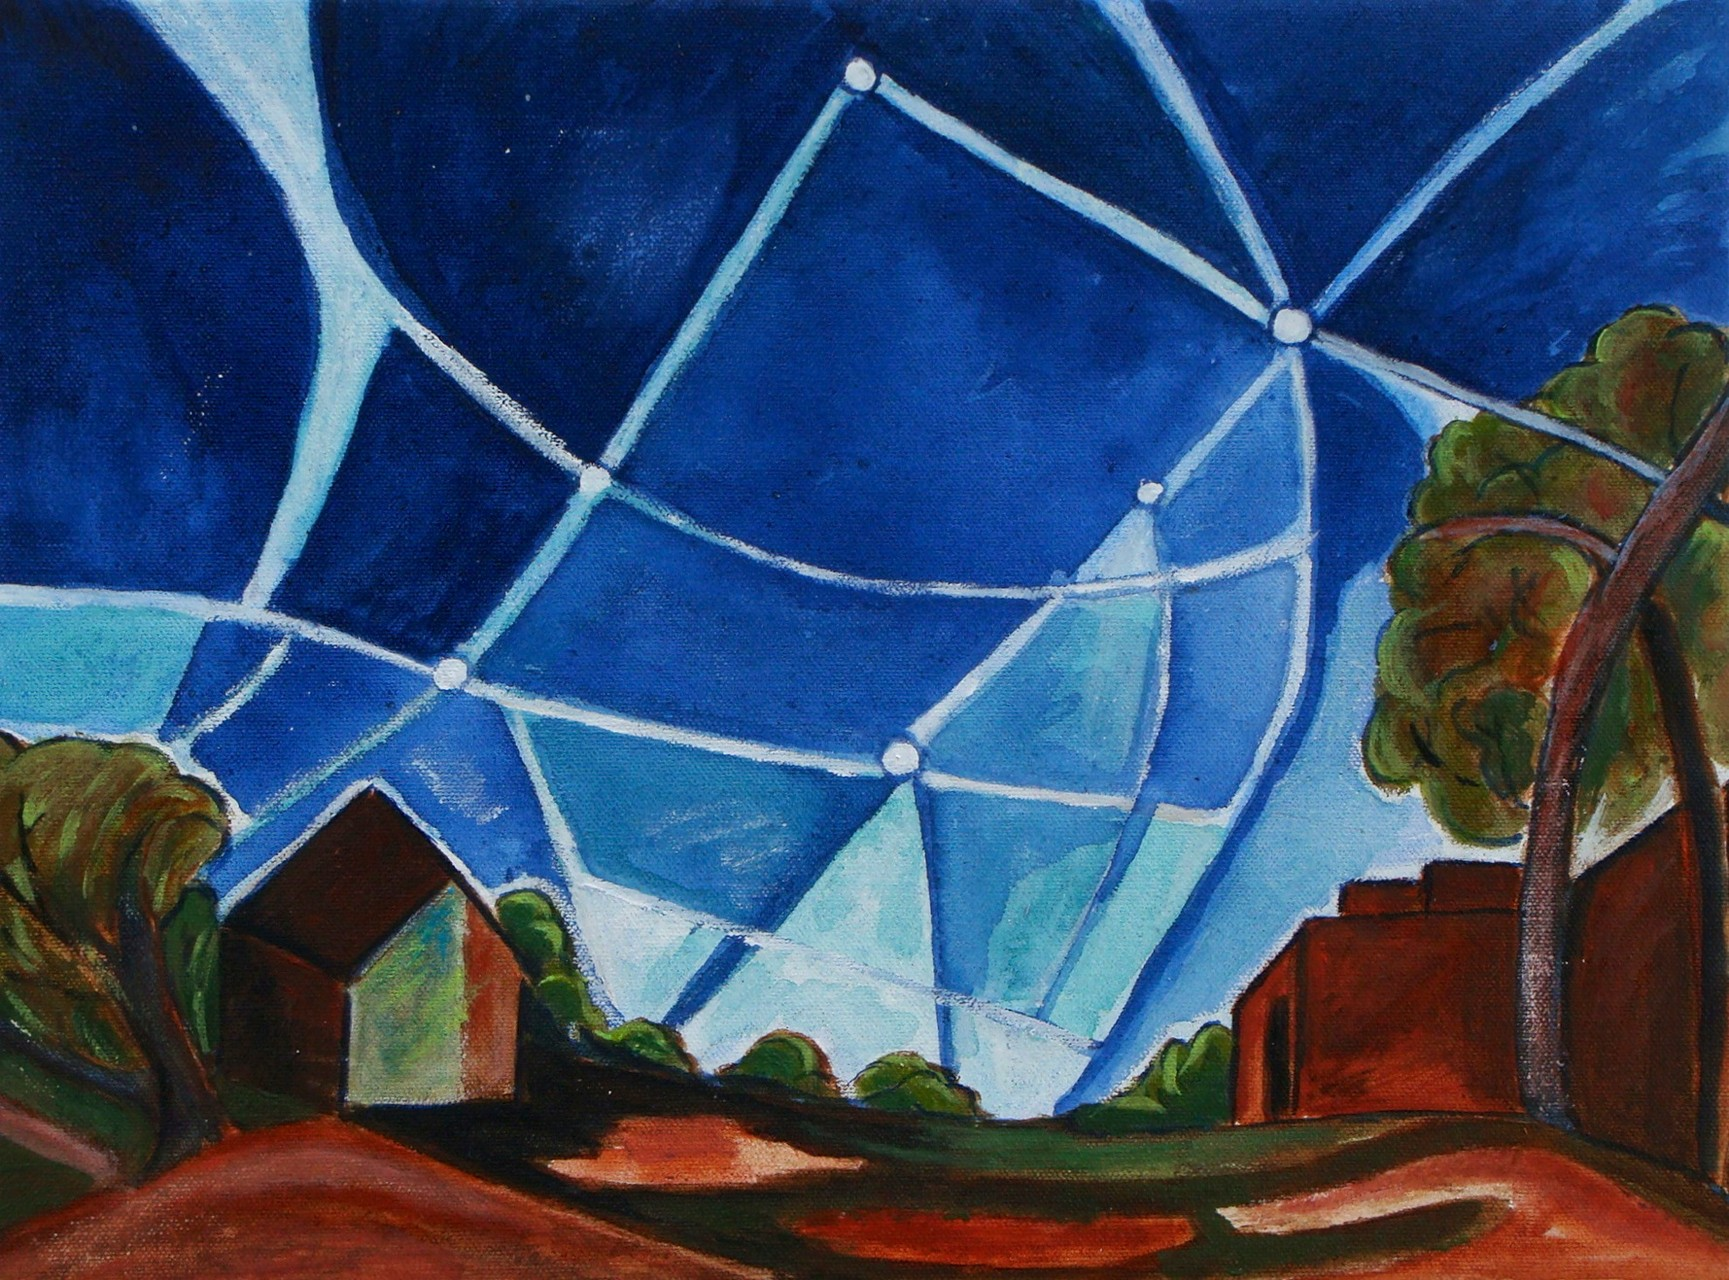 Meteor Shower, watercolor, 16 x 12, 2014 SOLD